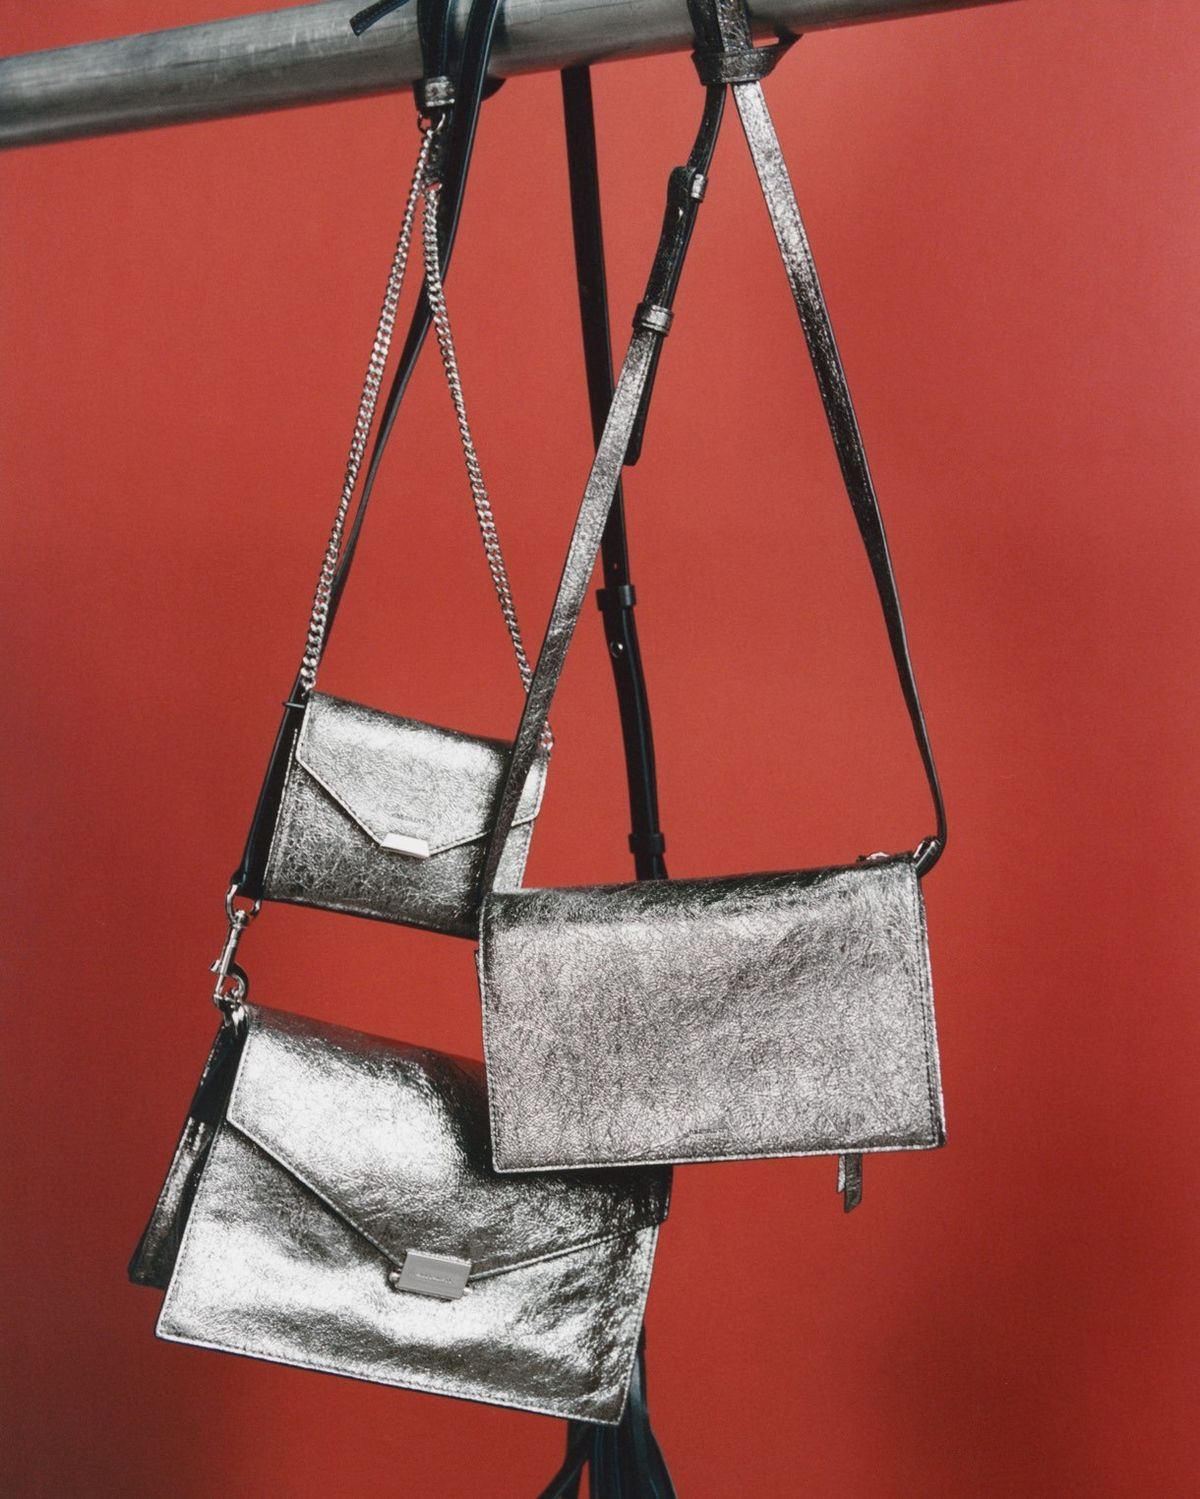 Image of three silver crossbody bags hanging in front of a red background.